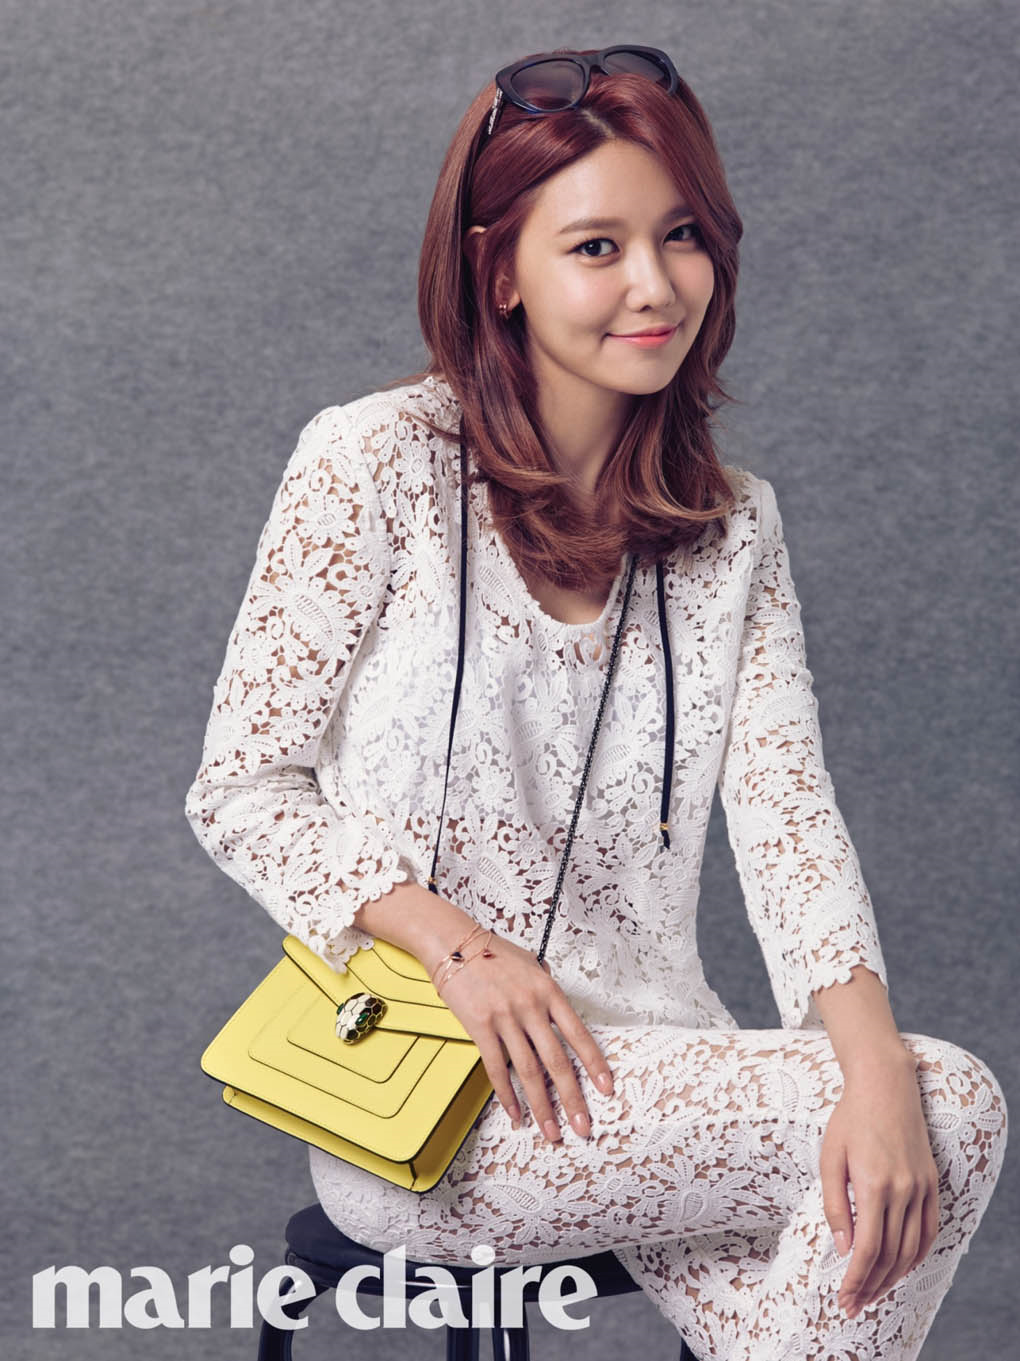 Girls' Generation Sooyoung